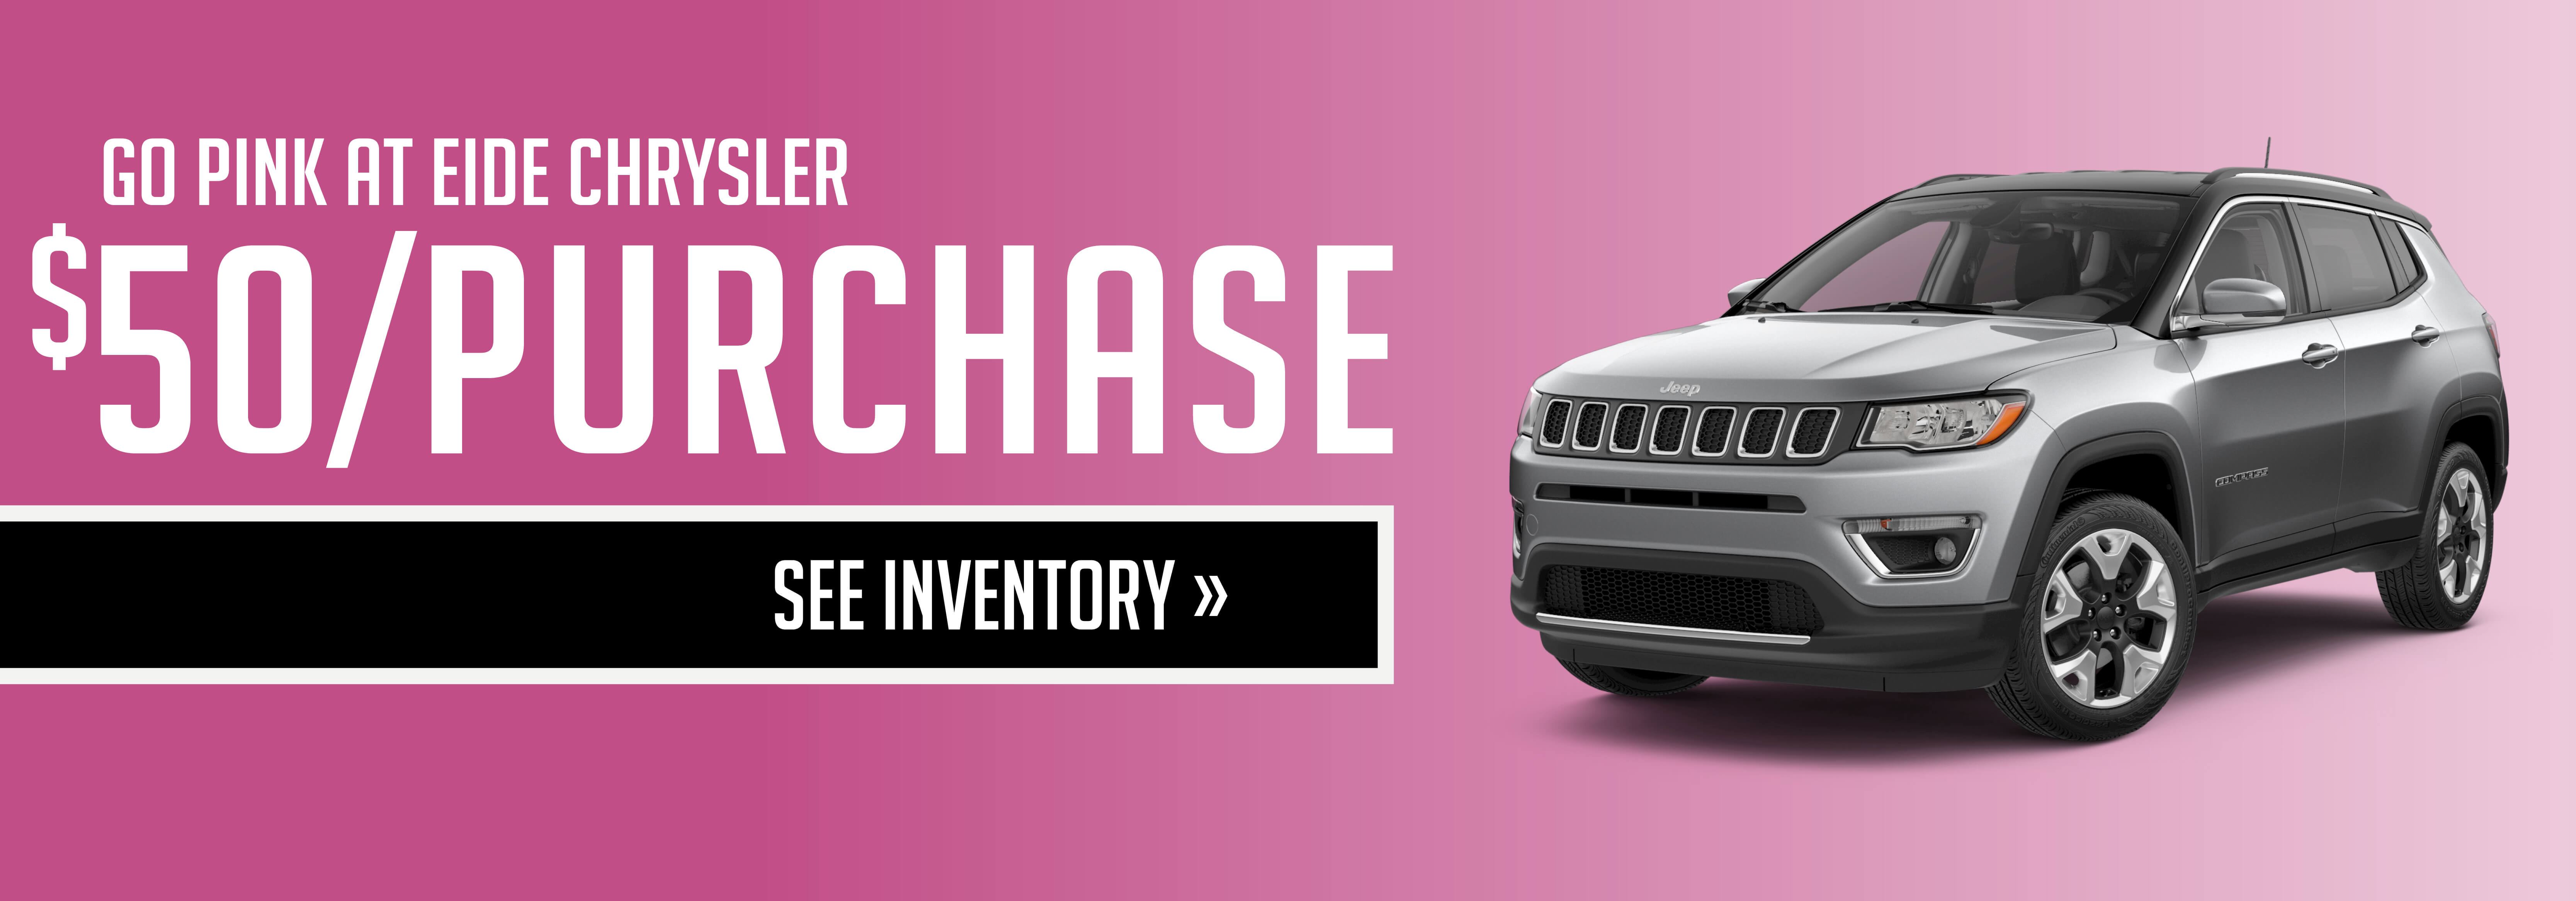 Go Pink at Eide Chrysler